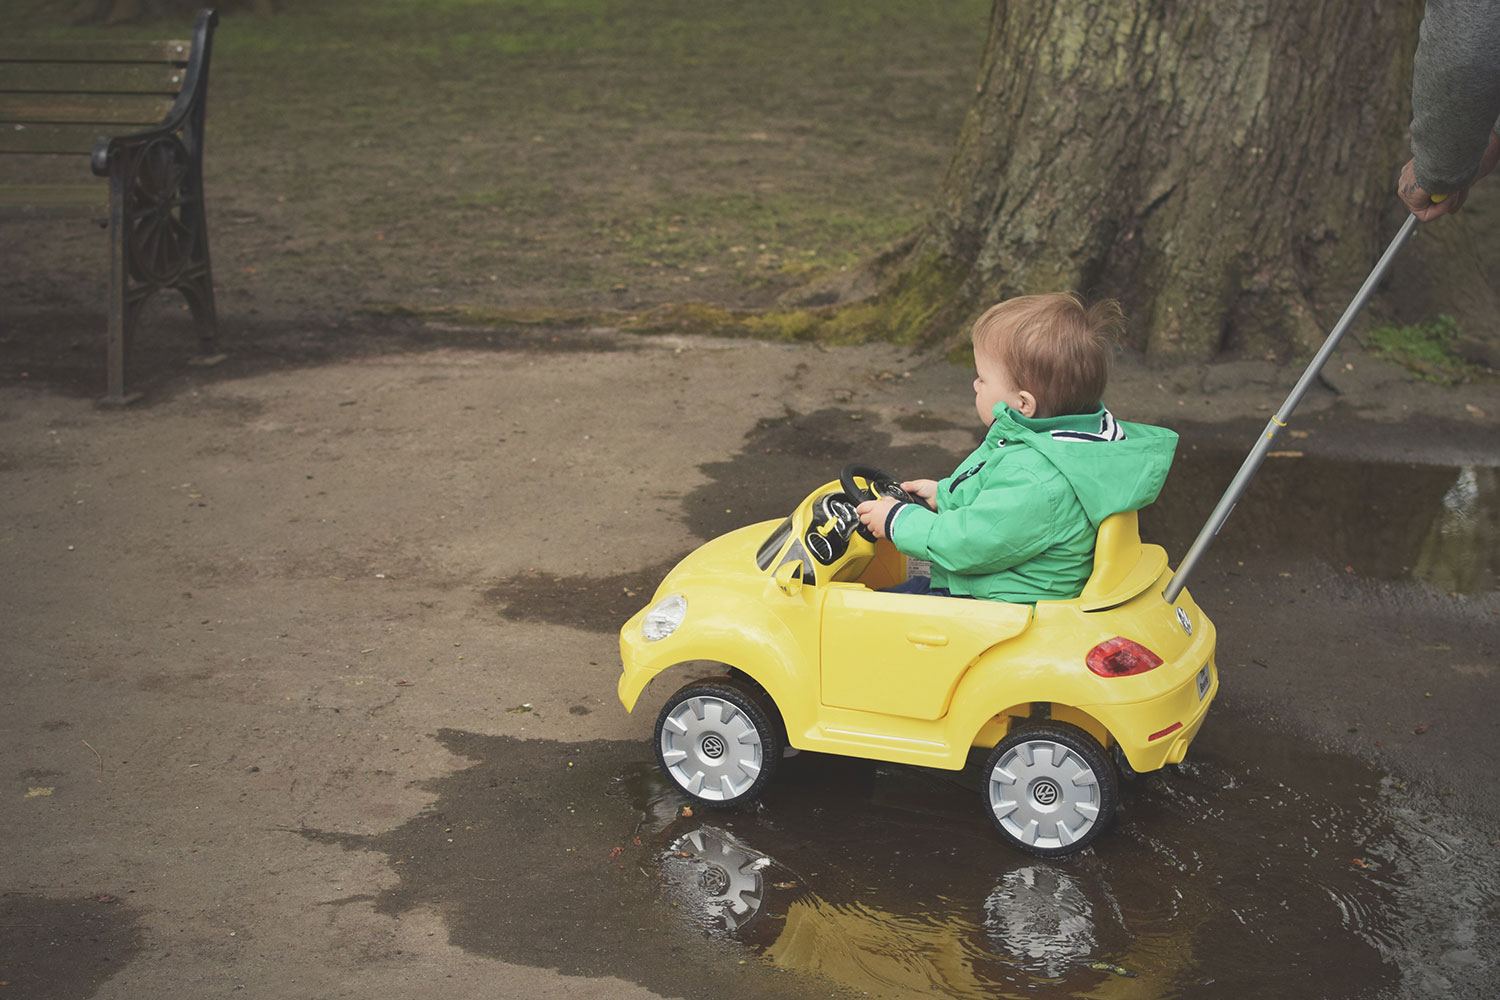 Grandparents sort of sprinkle stardust over the lives of their grandchildren — The Ordinary Moments #8; Toddler playing in the park wearing green Next raincoat in yellow toy mini ride-on car